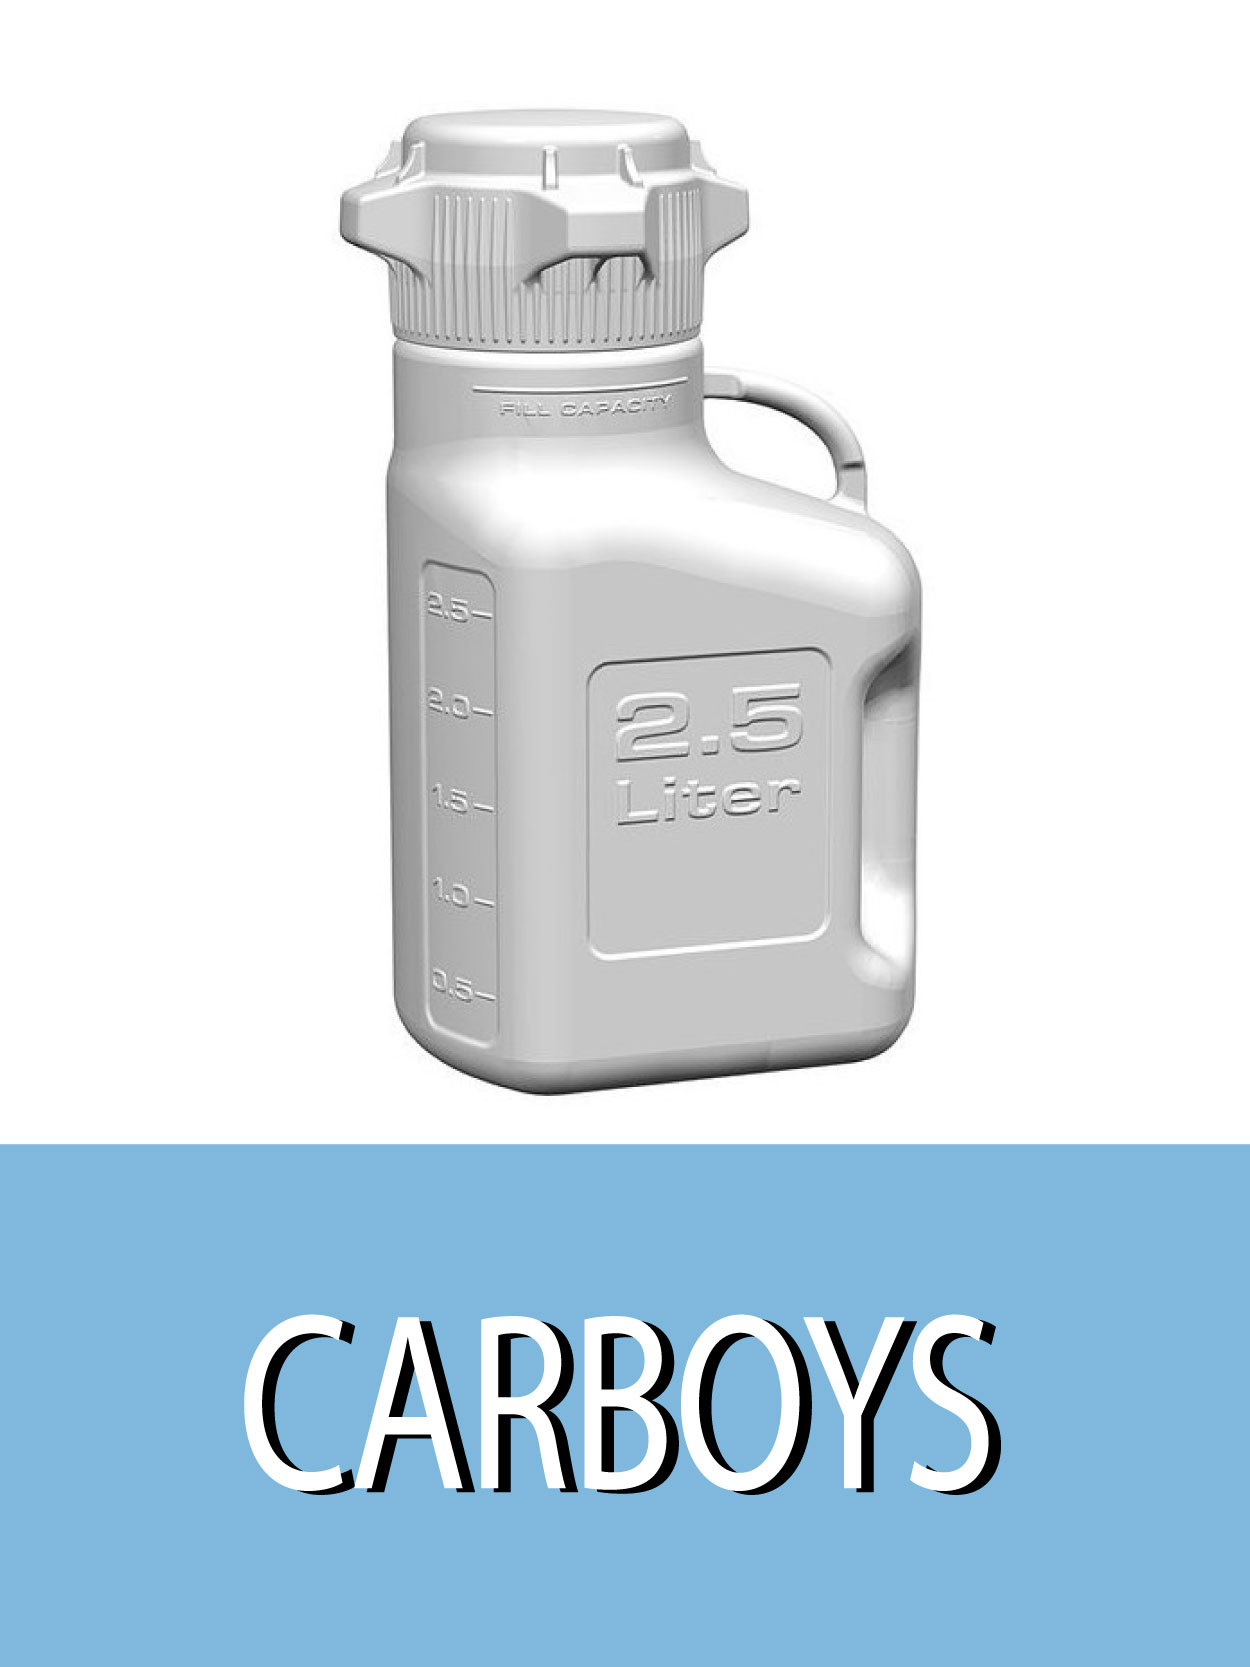 brewery-carboys